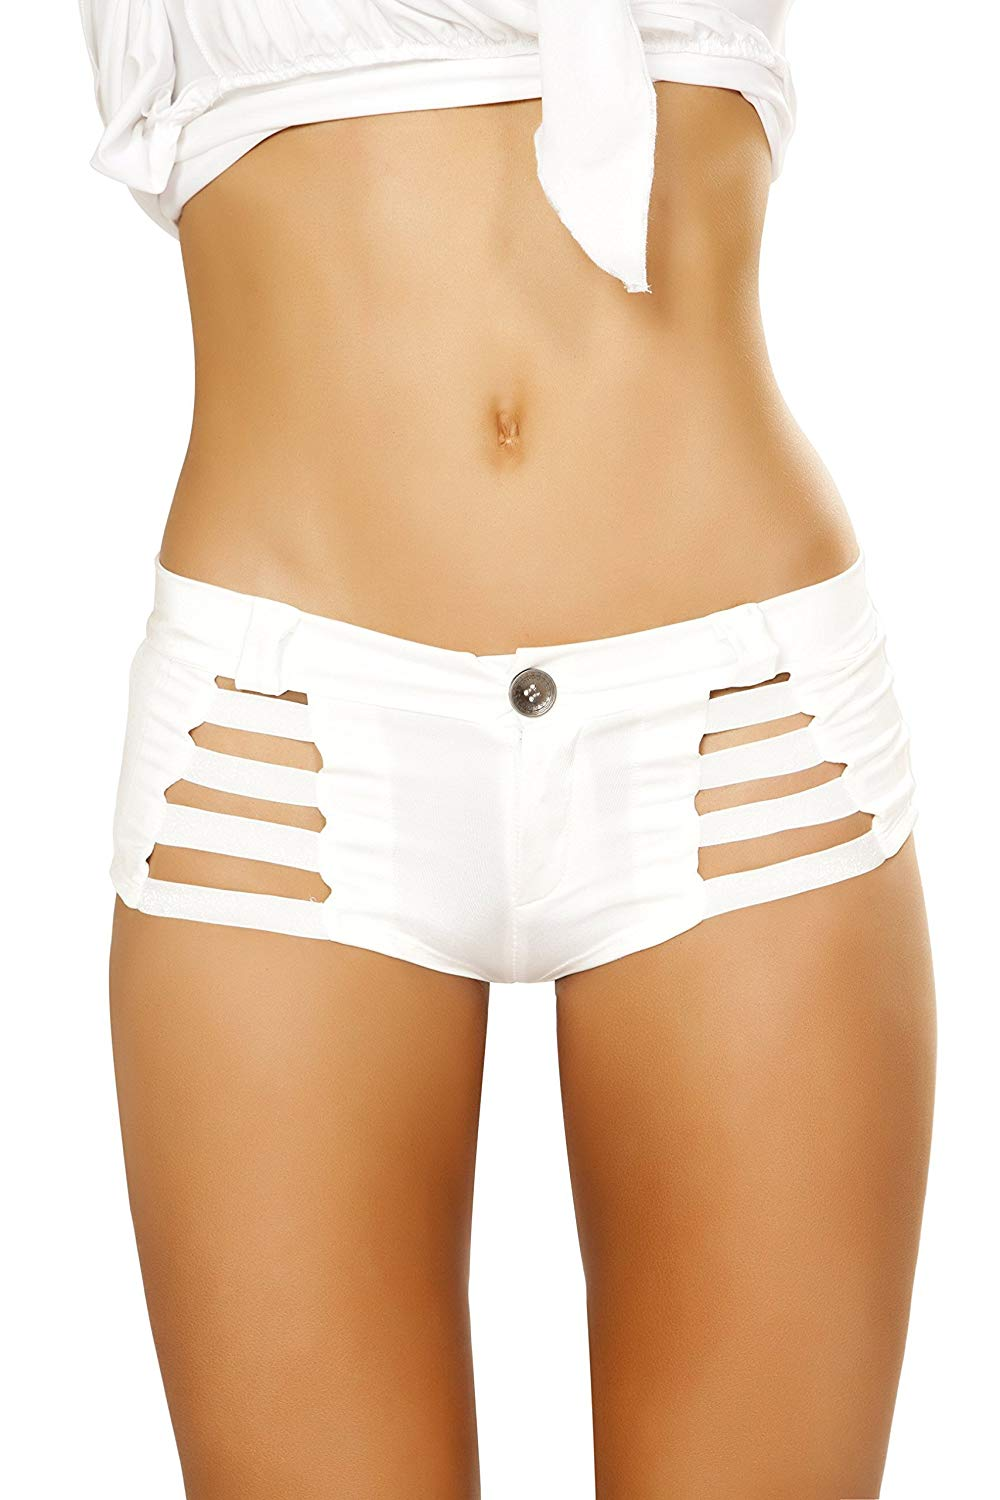 986e380760c Get Quotations · USA Clothing White Shorts with Shiny Straps and Button  Front Detail